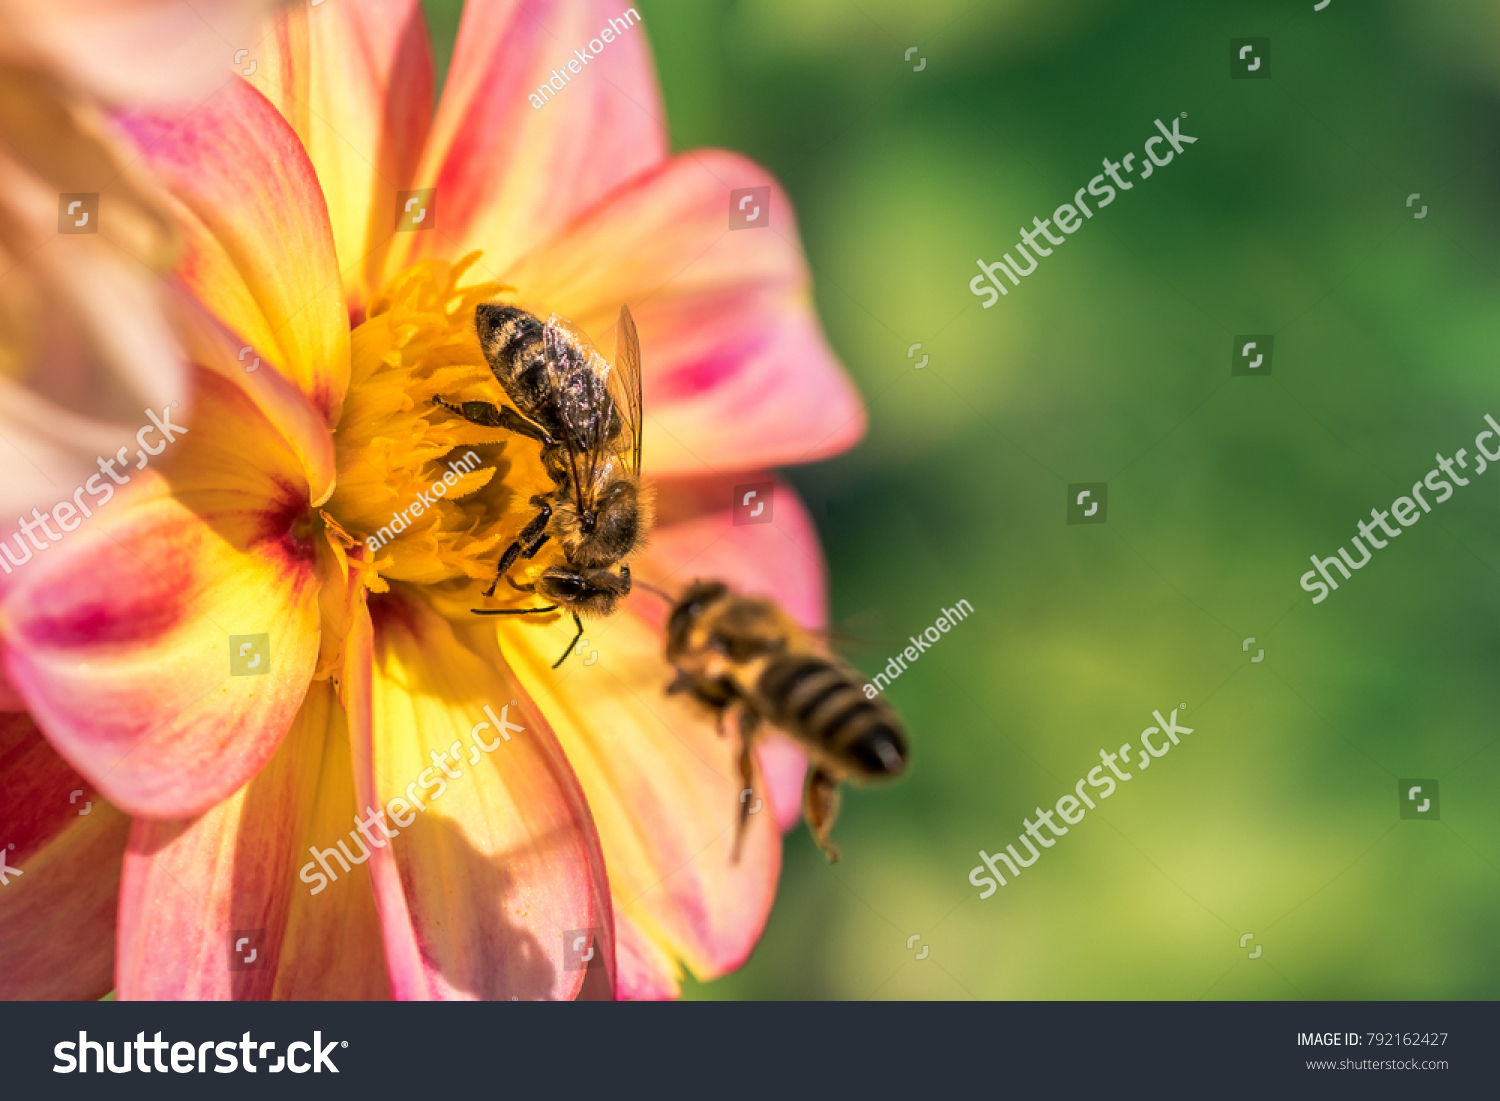 Insects Frolic On Colorful Flowers Suck Stock Photo (Royalty Free ...